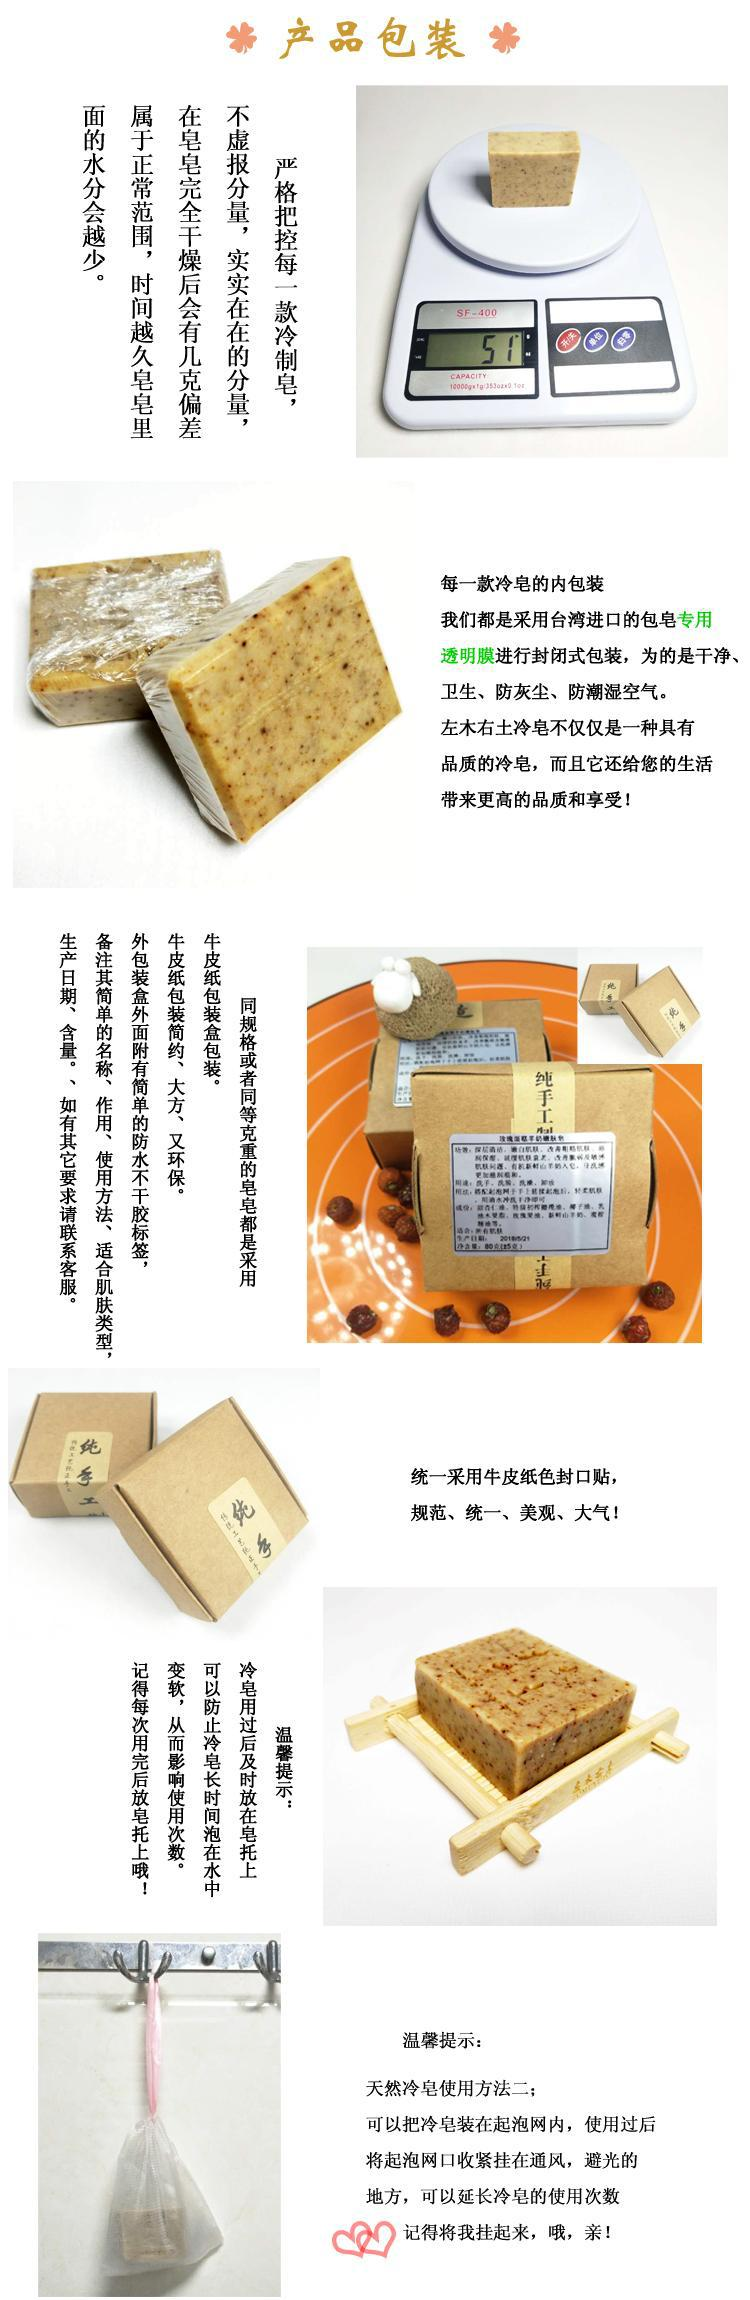 Soap The Best Chinese Herbal Soap Wash Face Bath Body Male Female Removing Dampness Beautymedical Handmade Soap Makeup Remove Skin Care Health Bath & Shower